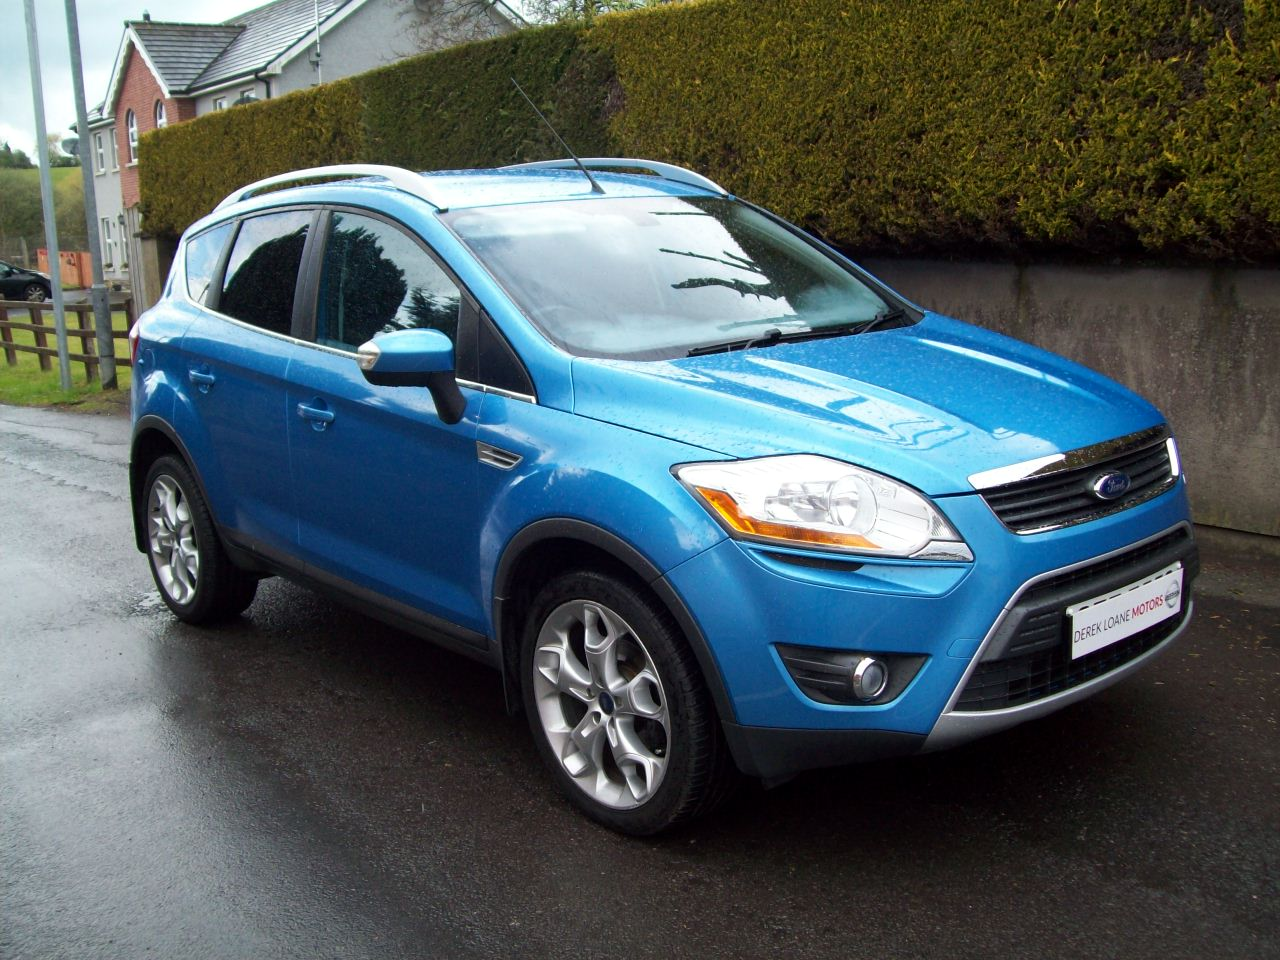 2010 Ford Kuga Diesel Manual – Derek Loane Motors